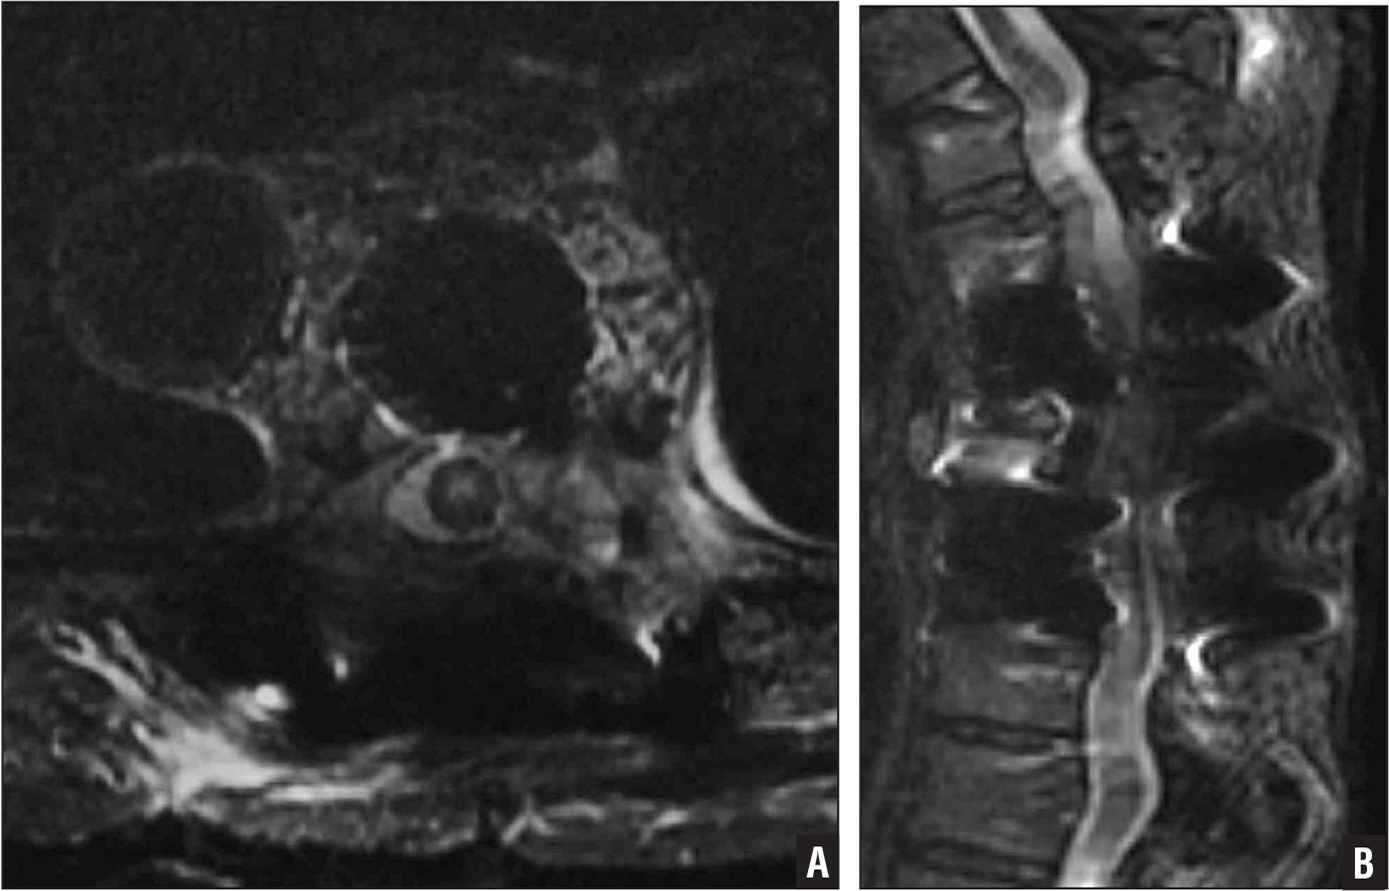 Axial (A) and sagittal (B) T2-weighted magnetic resonance images after the third surgery showing adequate decompression and a high-signal lesion in the spinal cord.